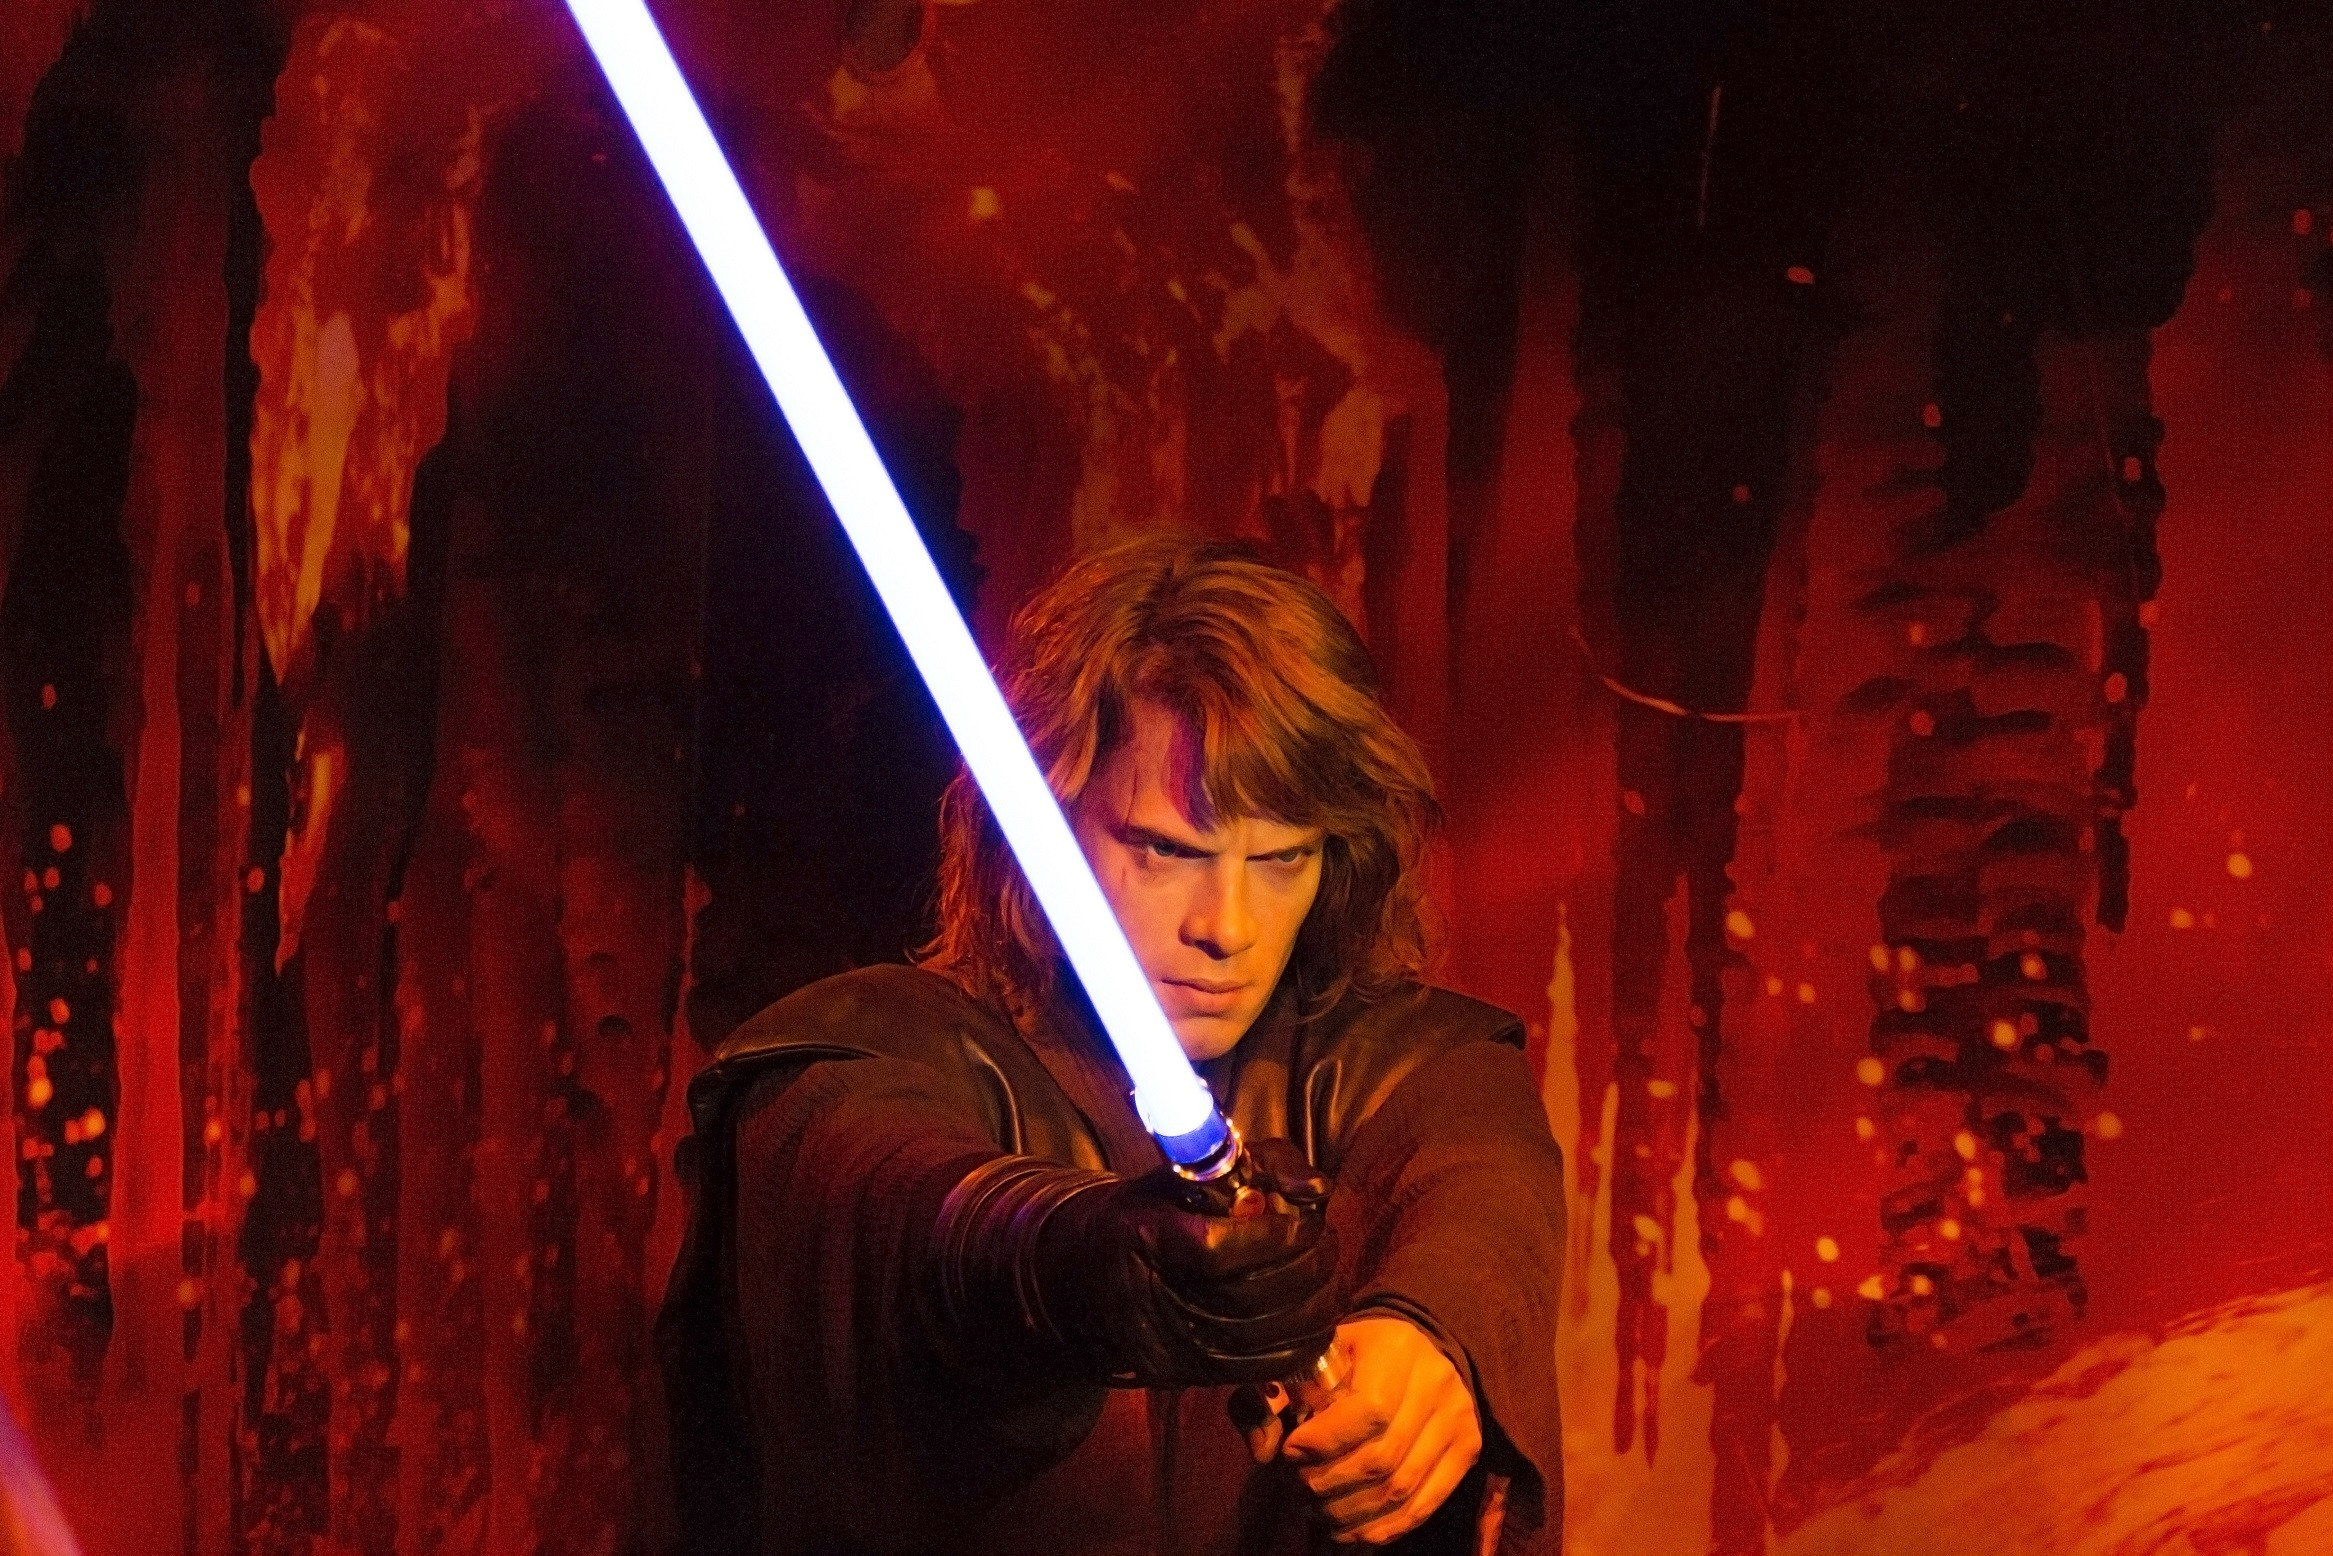 2333x1556 Sci Fi - Star Wars Anakin Skywalker Statue Sci Fi Lightsaber Red Wallpaper